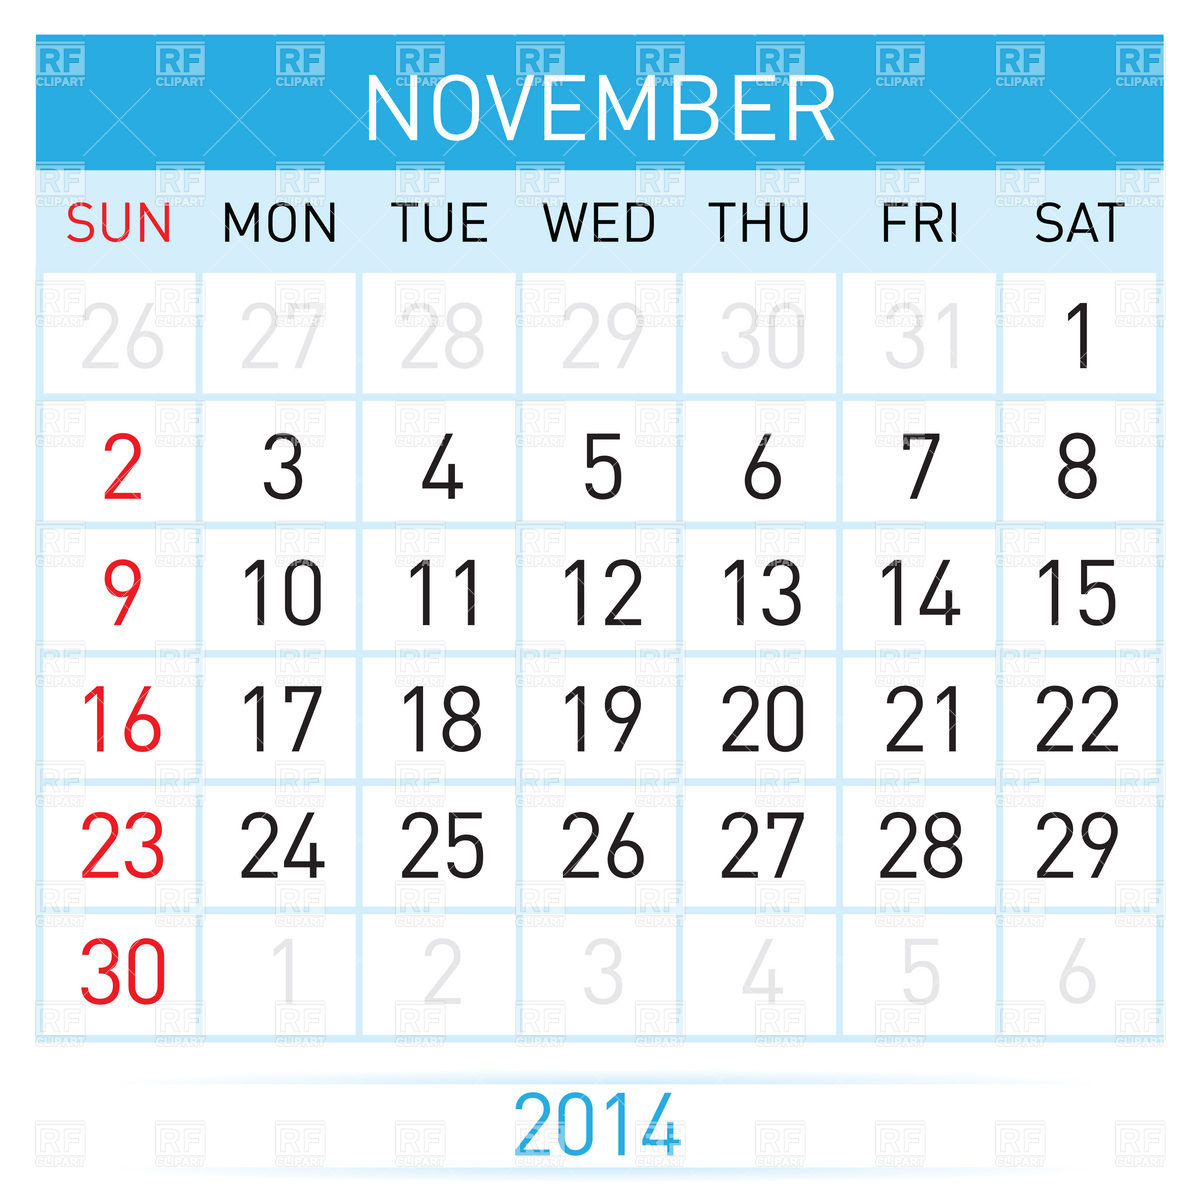 Clipart calendar november 2014 clipart royalty free stock November 2014 month calendar Vector Image #7010 – RFclipart clipart royalty free stock